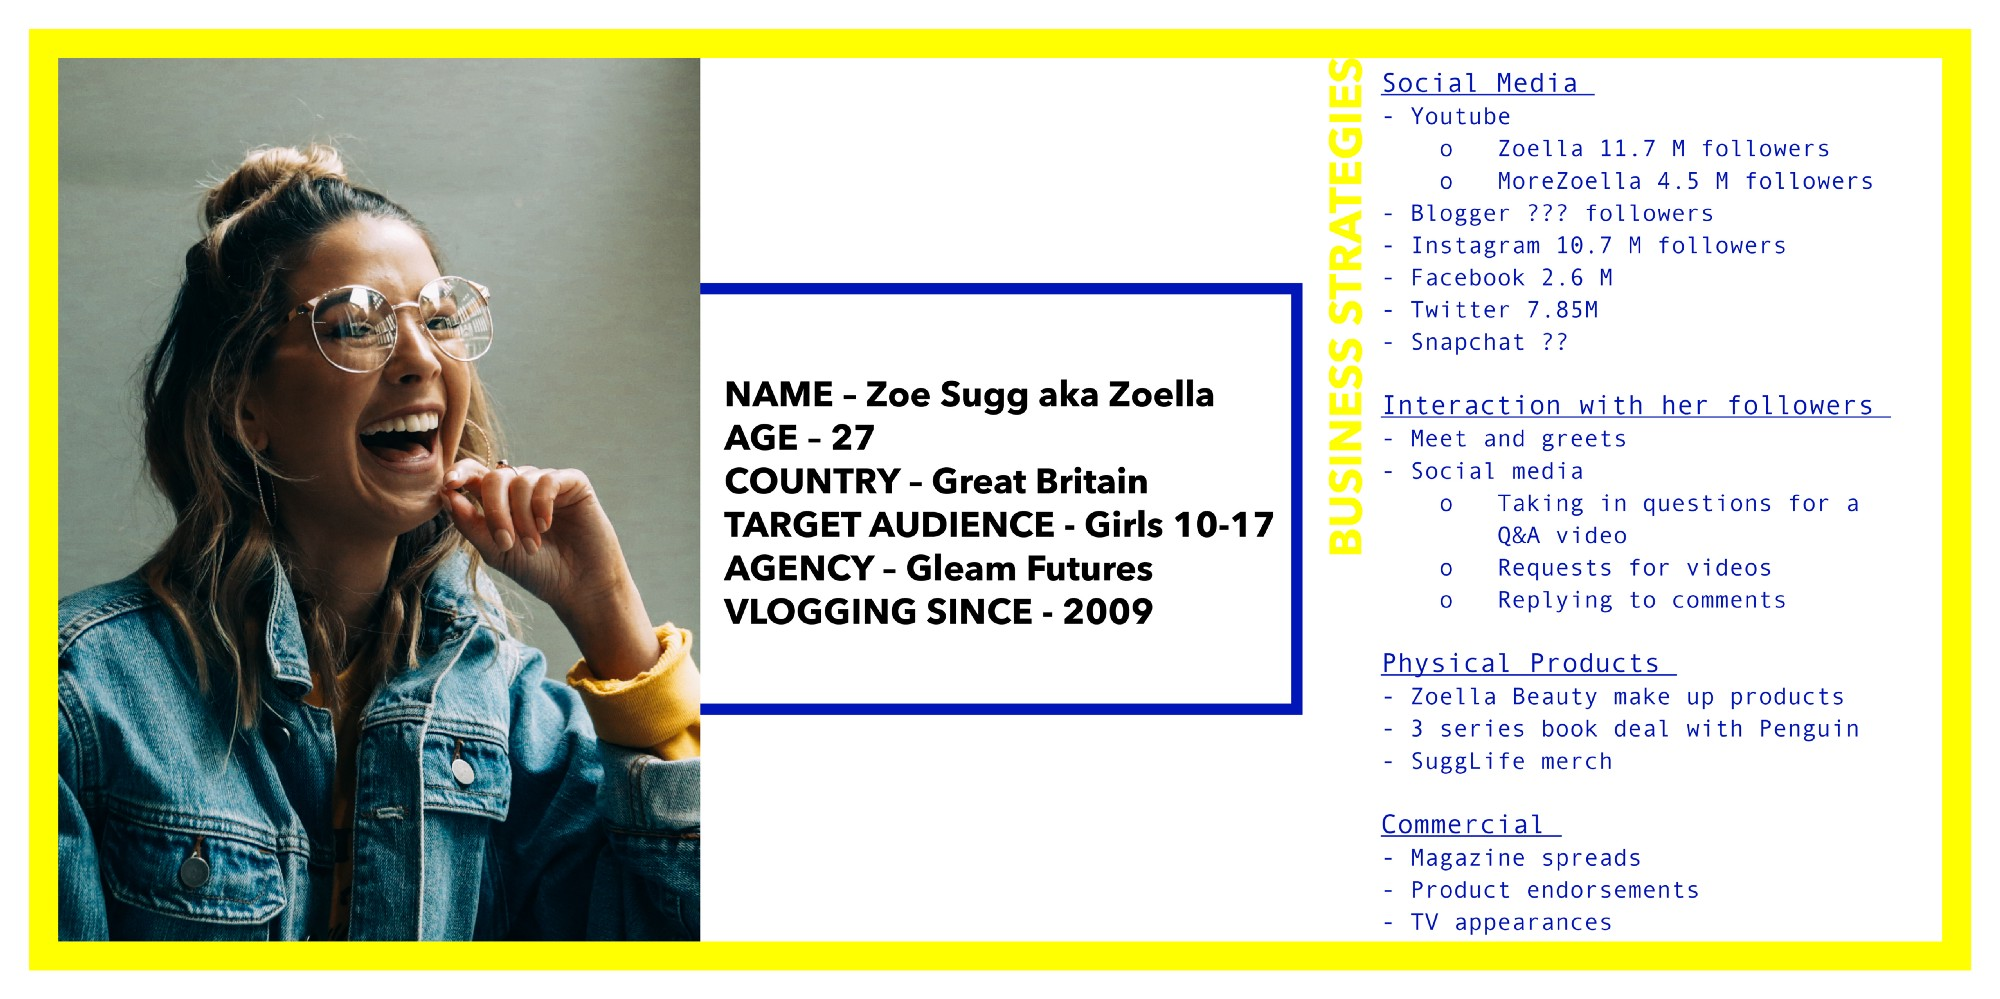 Profiling Zoella What Would You Do With 11 Million Followers